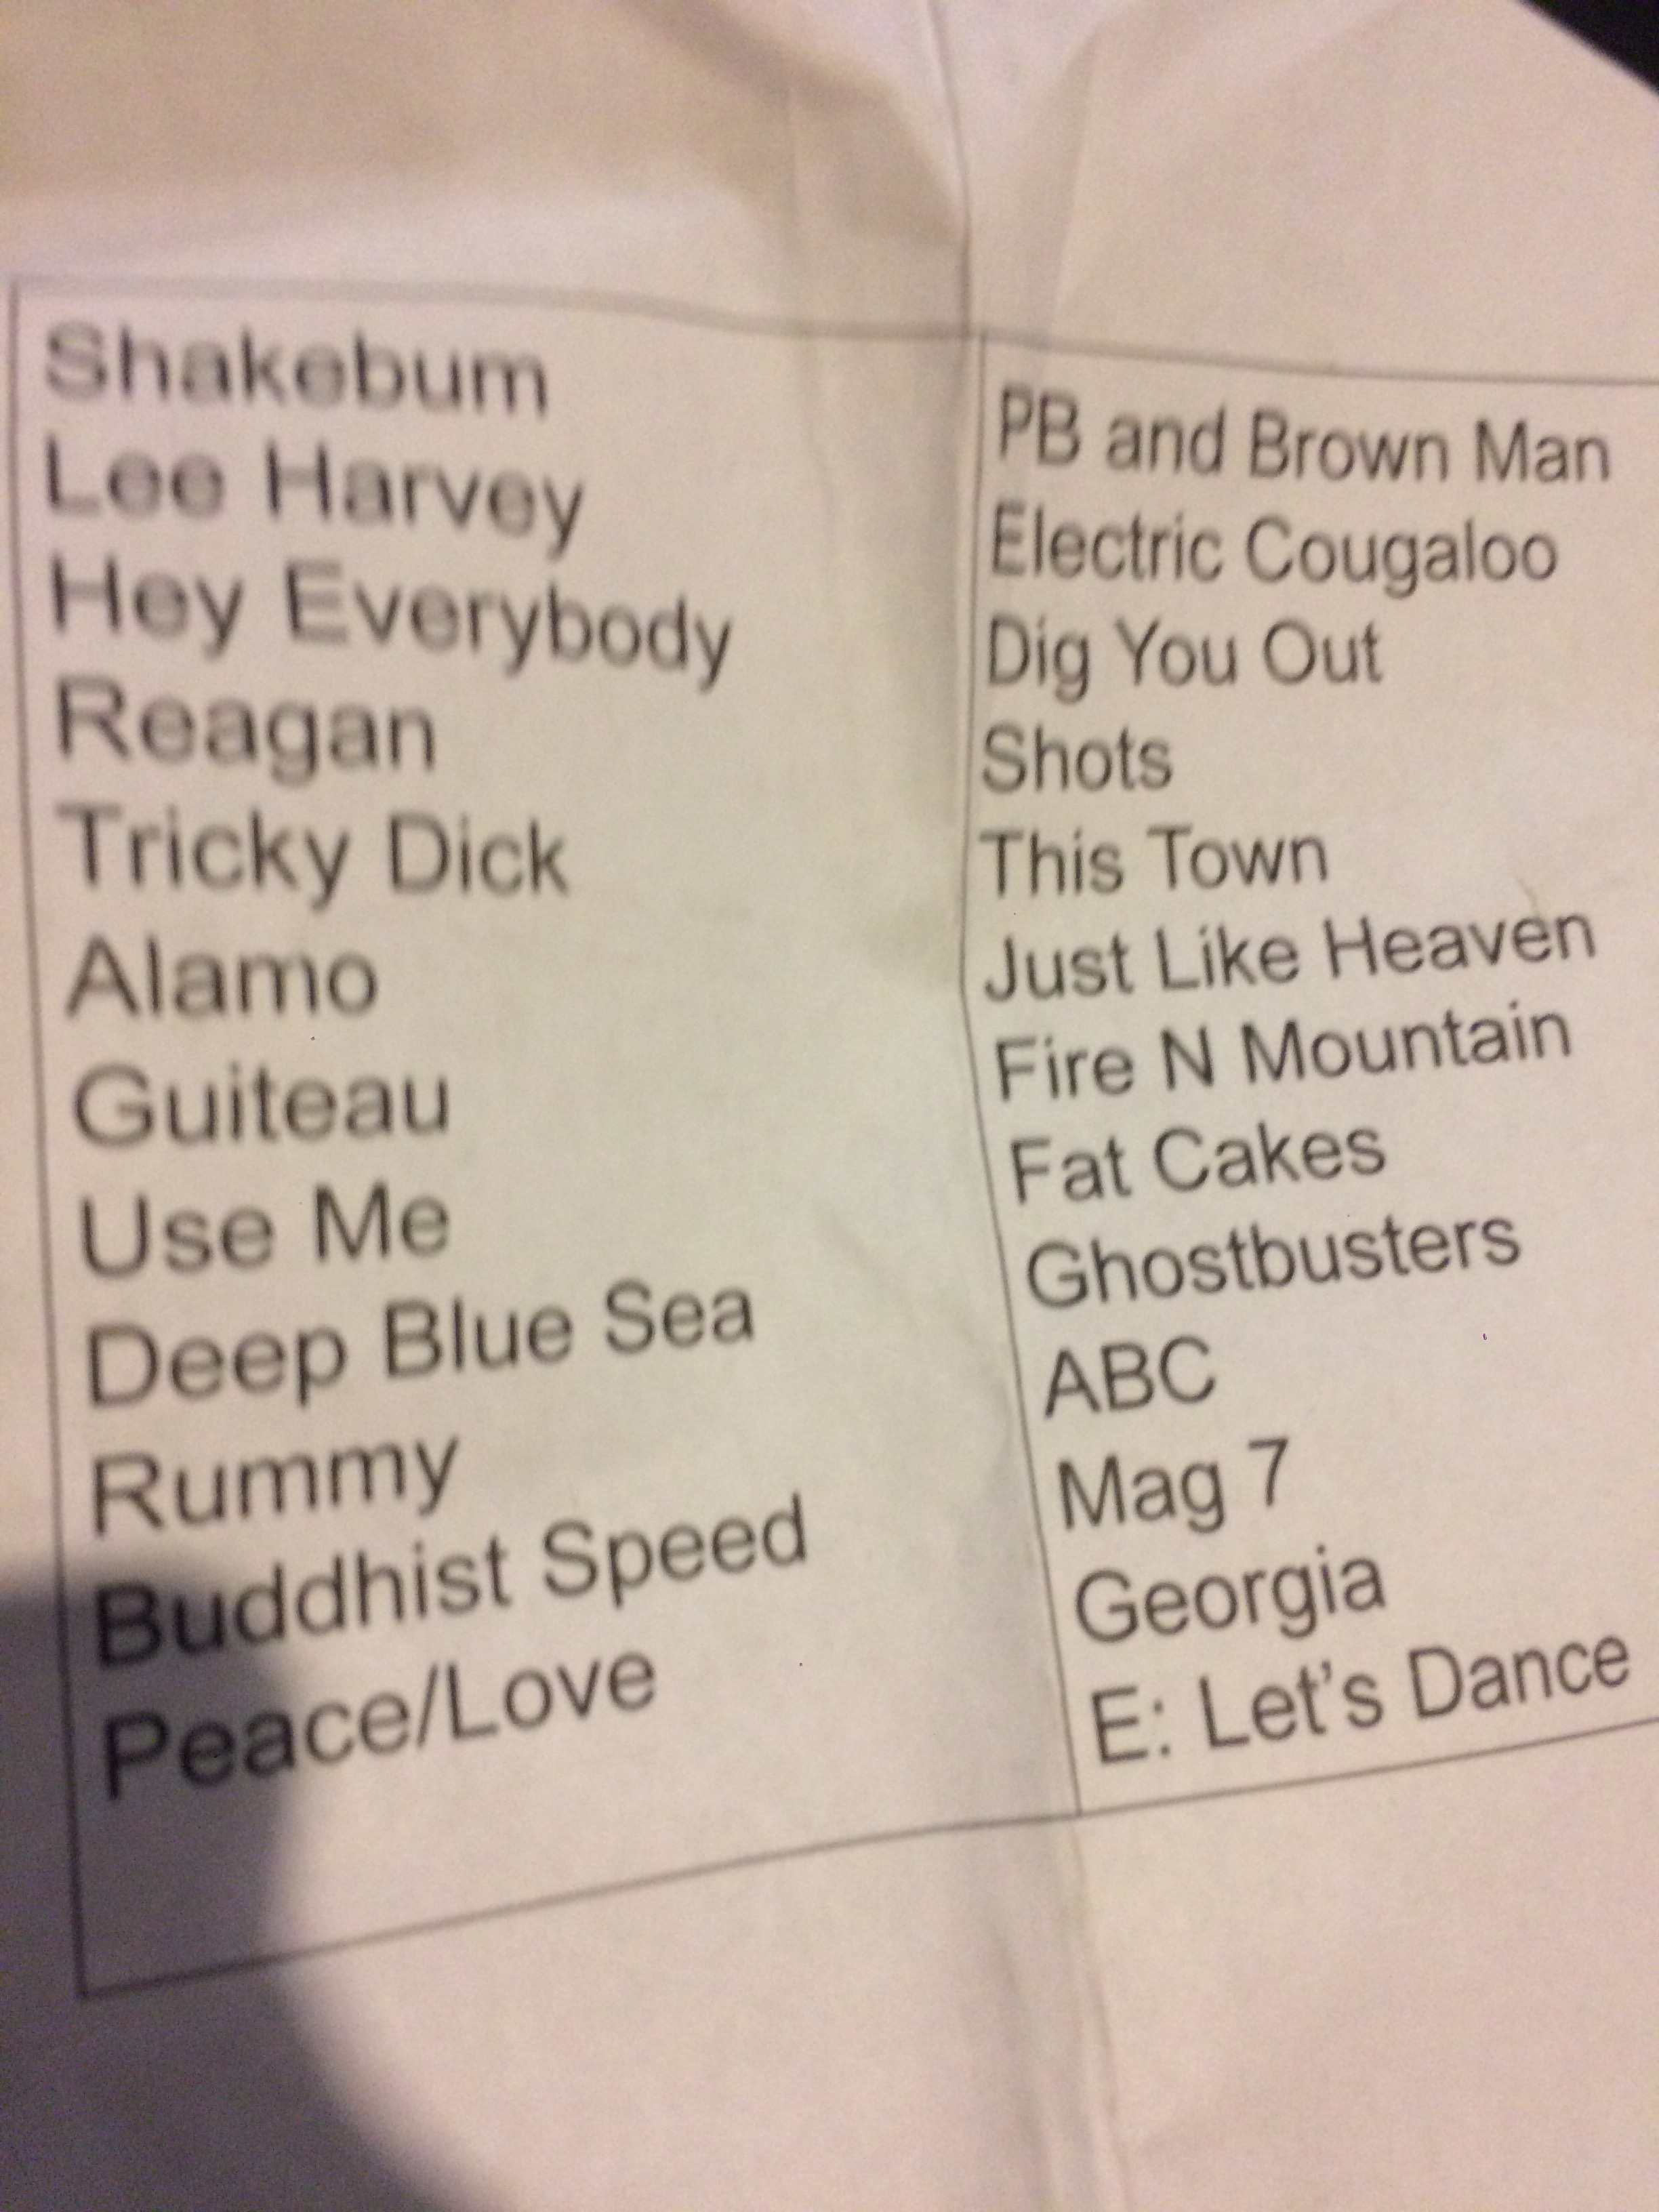 Setlist from Dutch Treat 2.25.17. We skipped Alamo, put Guiteau second-to-last in the first set, and Rick sang Reagan.